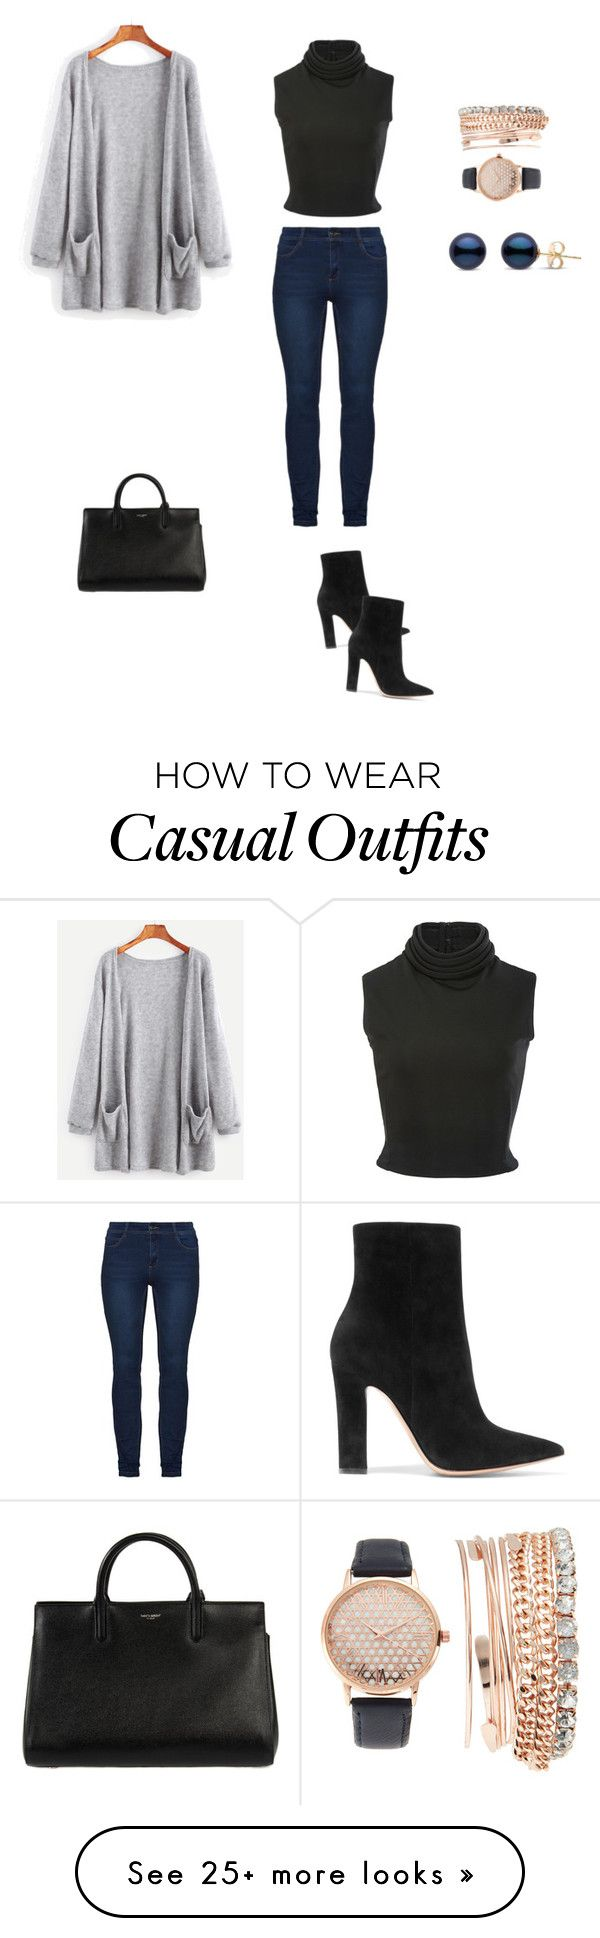 """""""casual -dressy outfit"""" by mrashui on Polyvore featuring Gianvito Rossi, Brandon Maxwell, Yves Saint Laurent and Jessica Carlyle"""